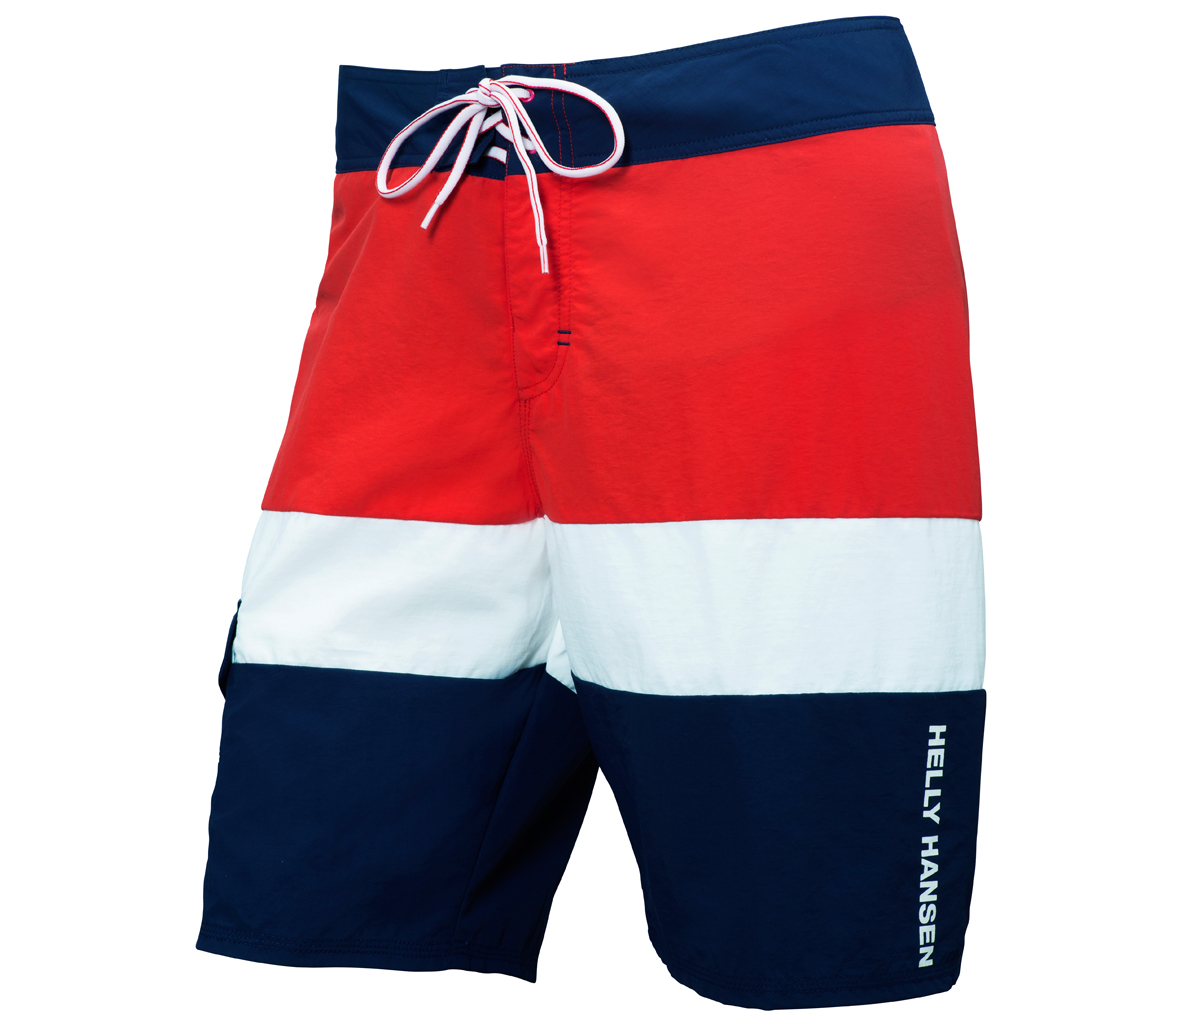 fe66092ef1 The Best Swim Trunks for Men for Summer and the Beach